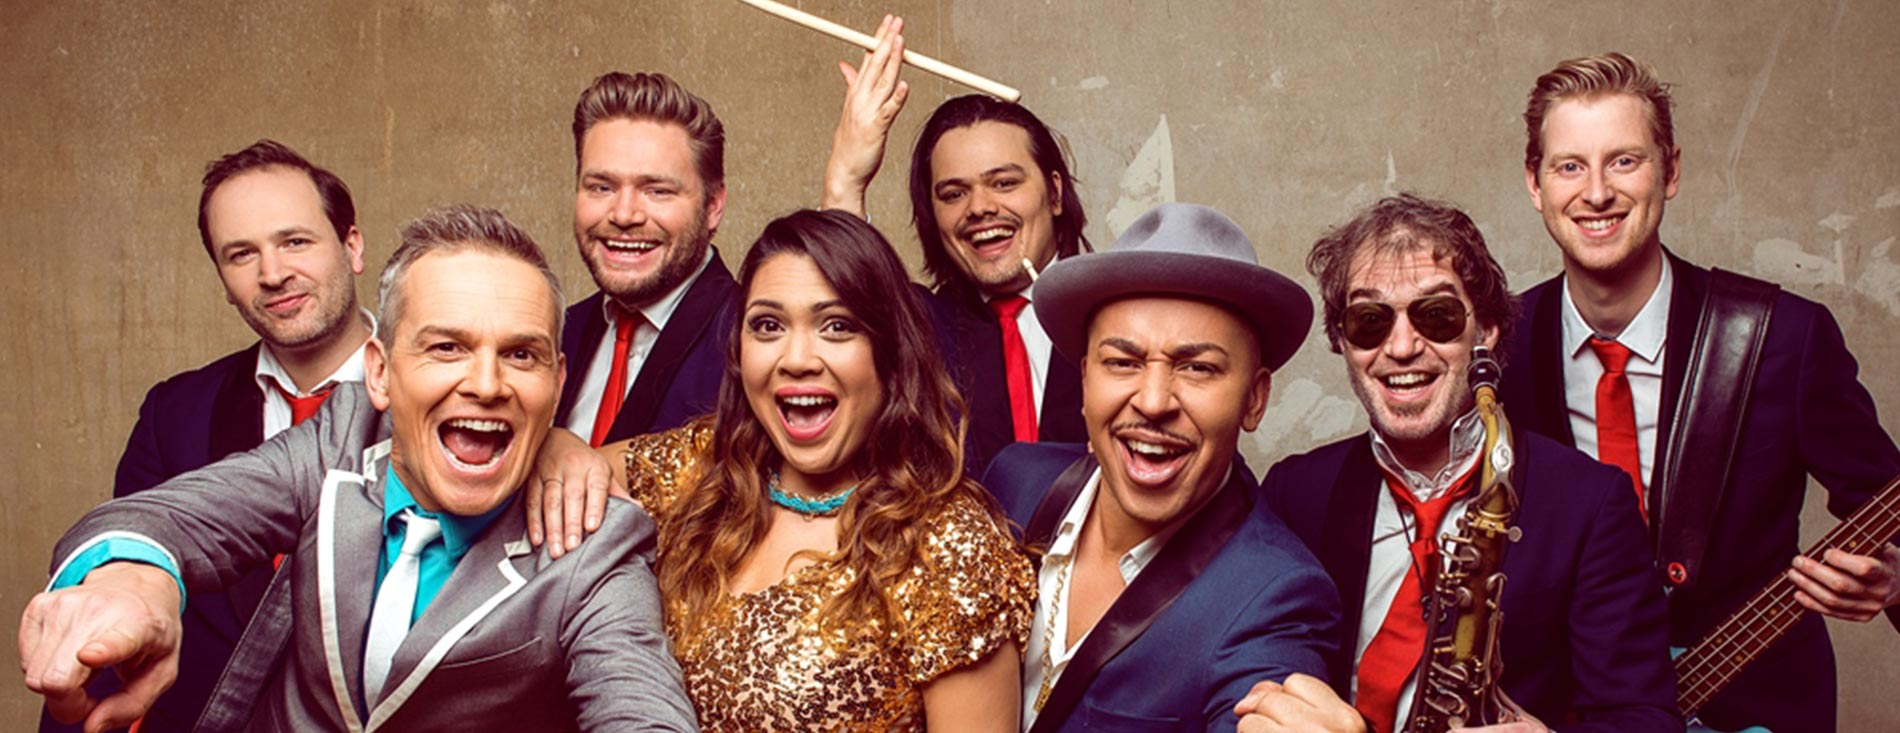 Hermes House Band and Lou Bega press picture